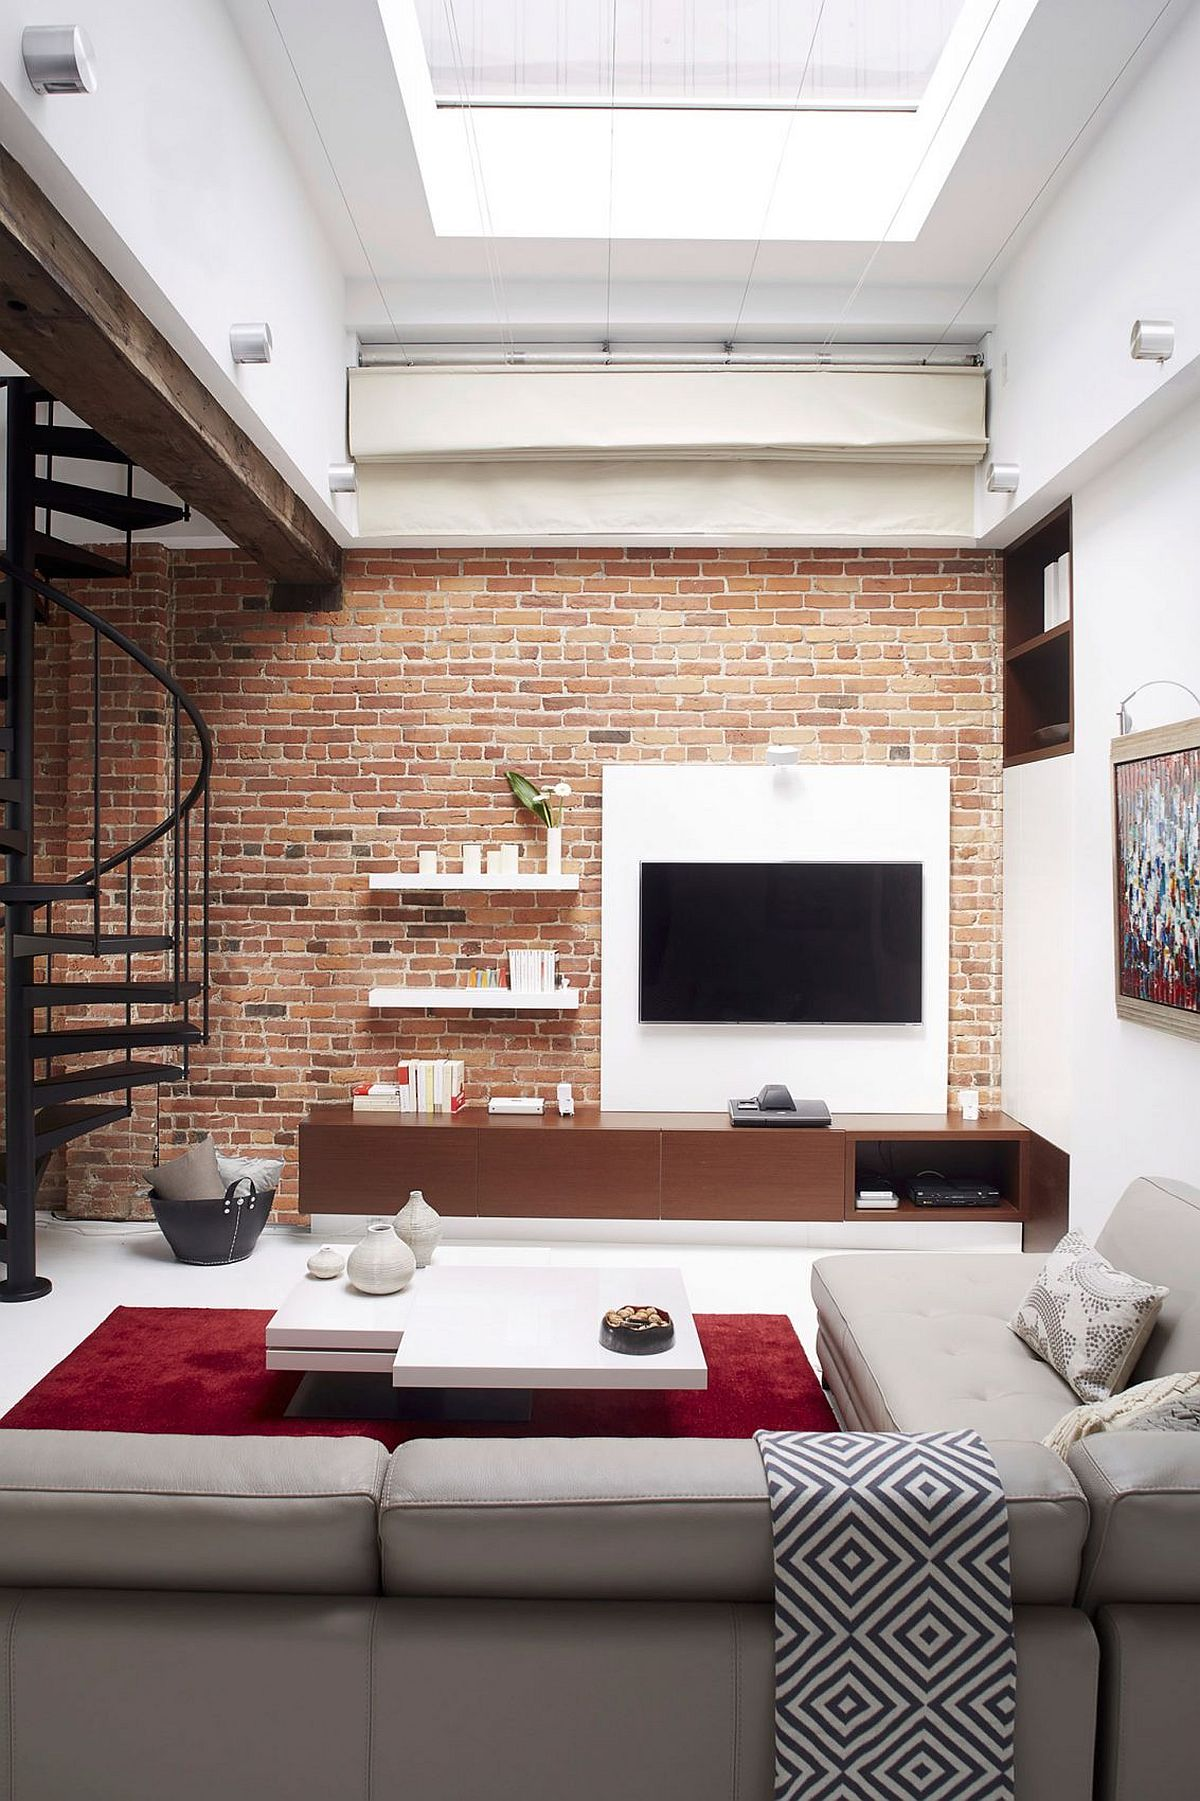 Living room entertainment unit with brick wall backdrop